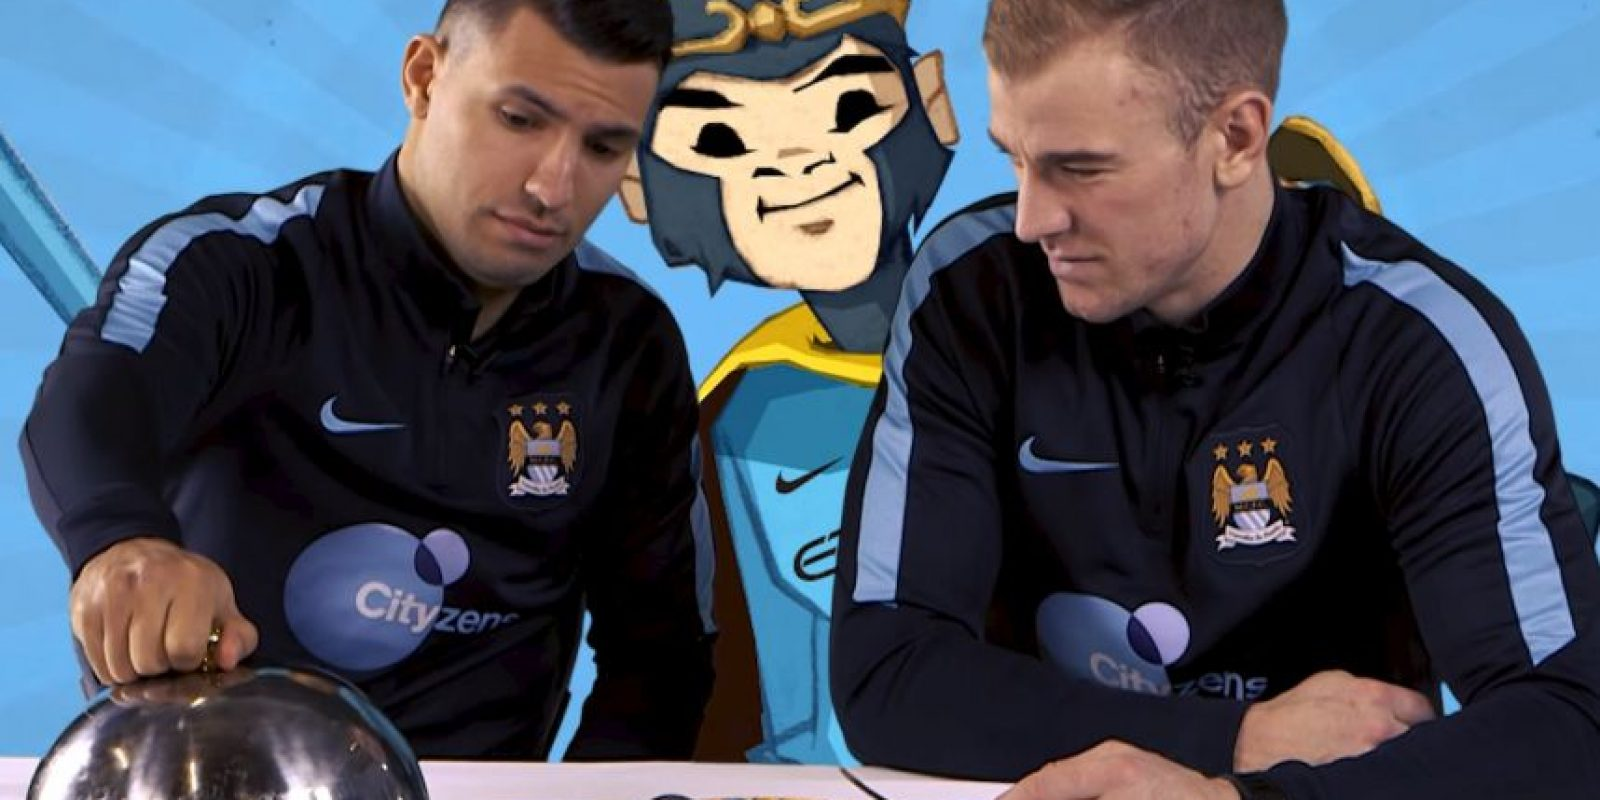 Manchester City celebró el año nuevo chino con un video divertido. Foto: YouTube Manchester City FC